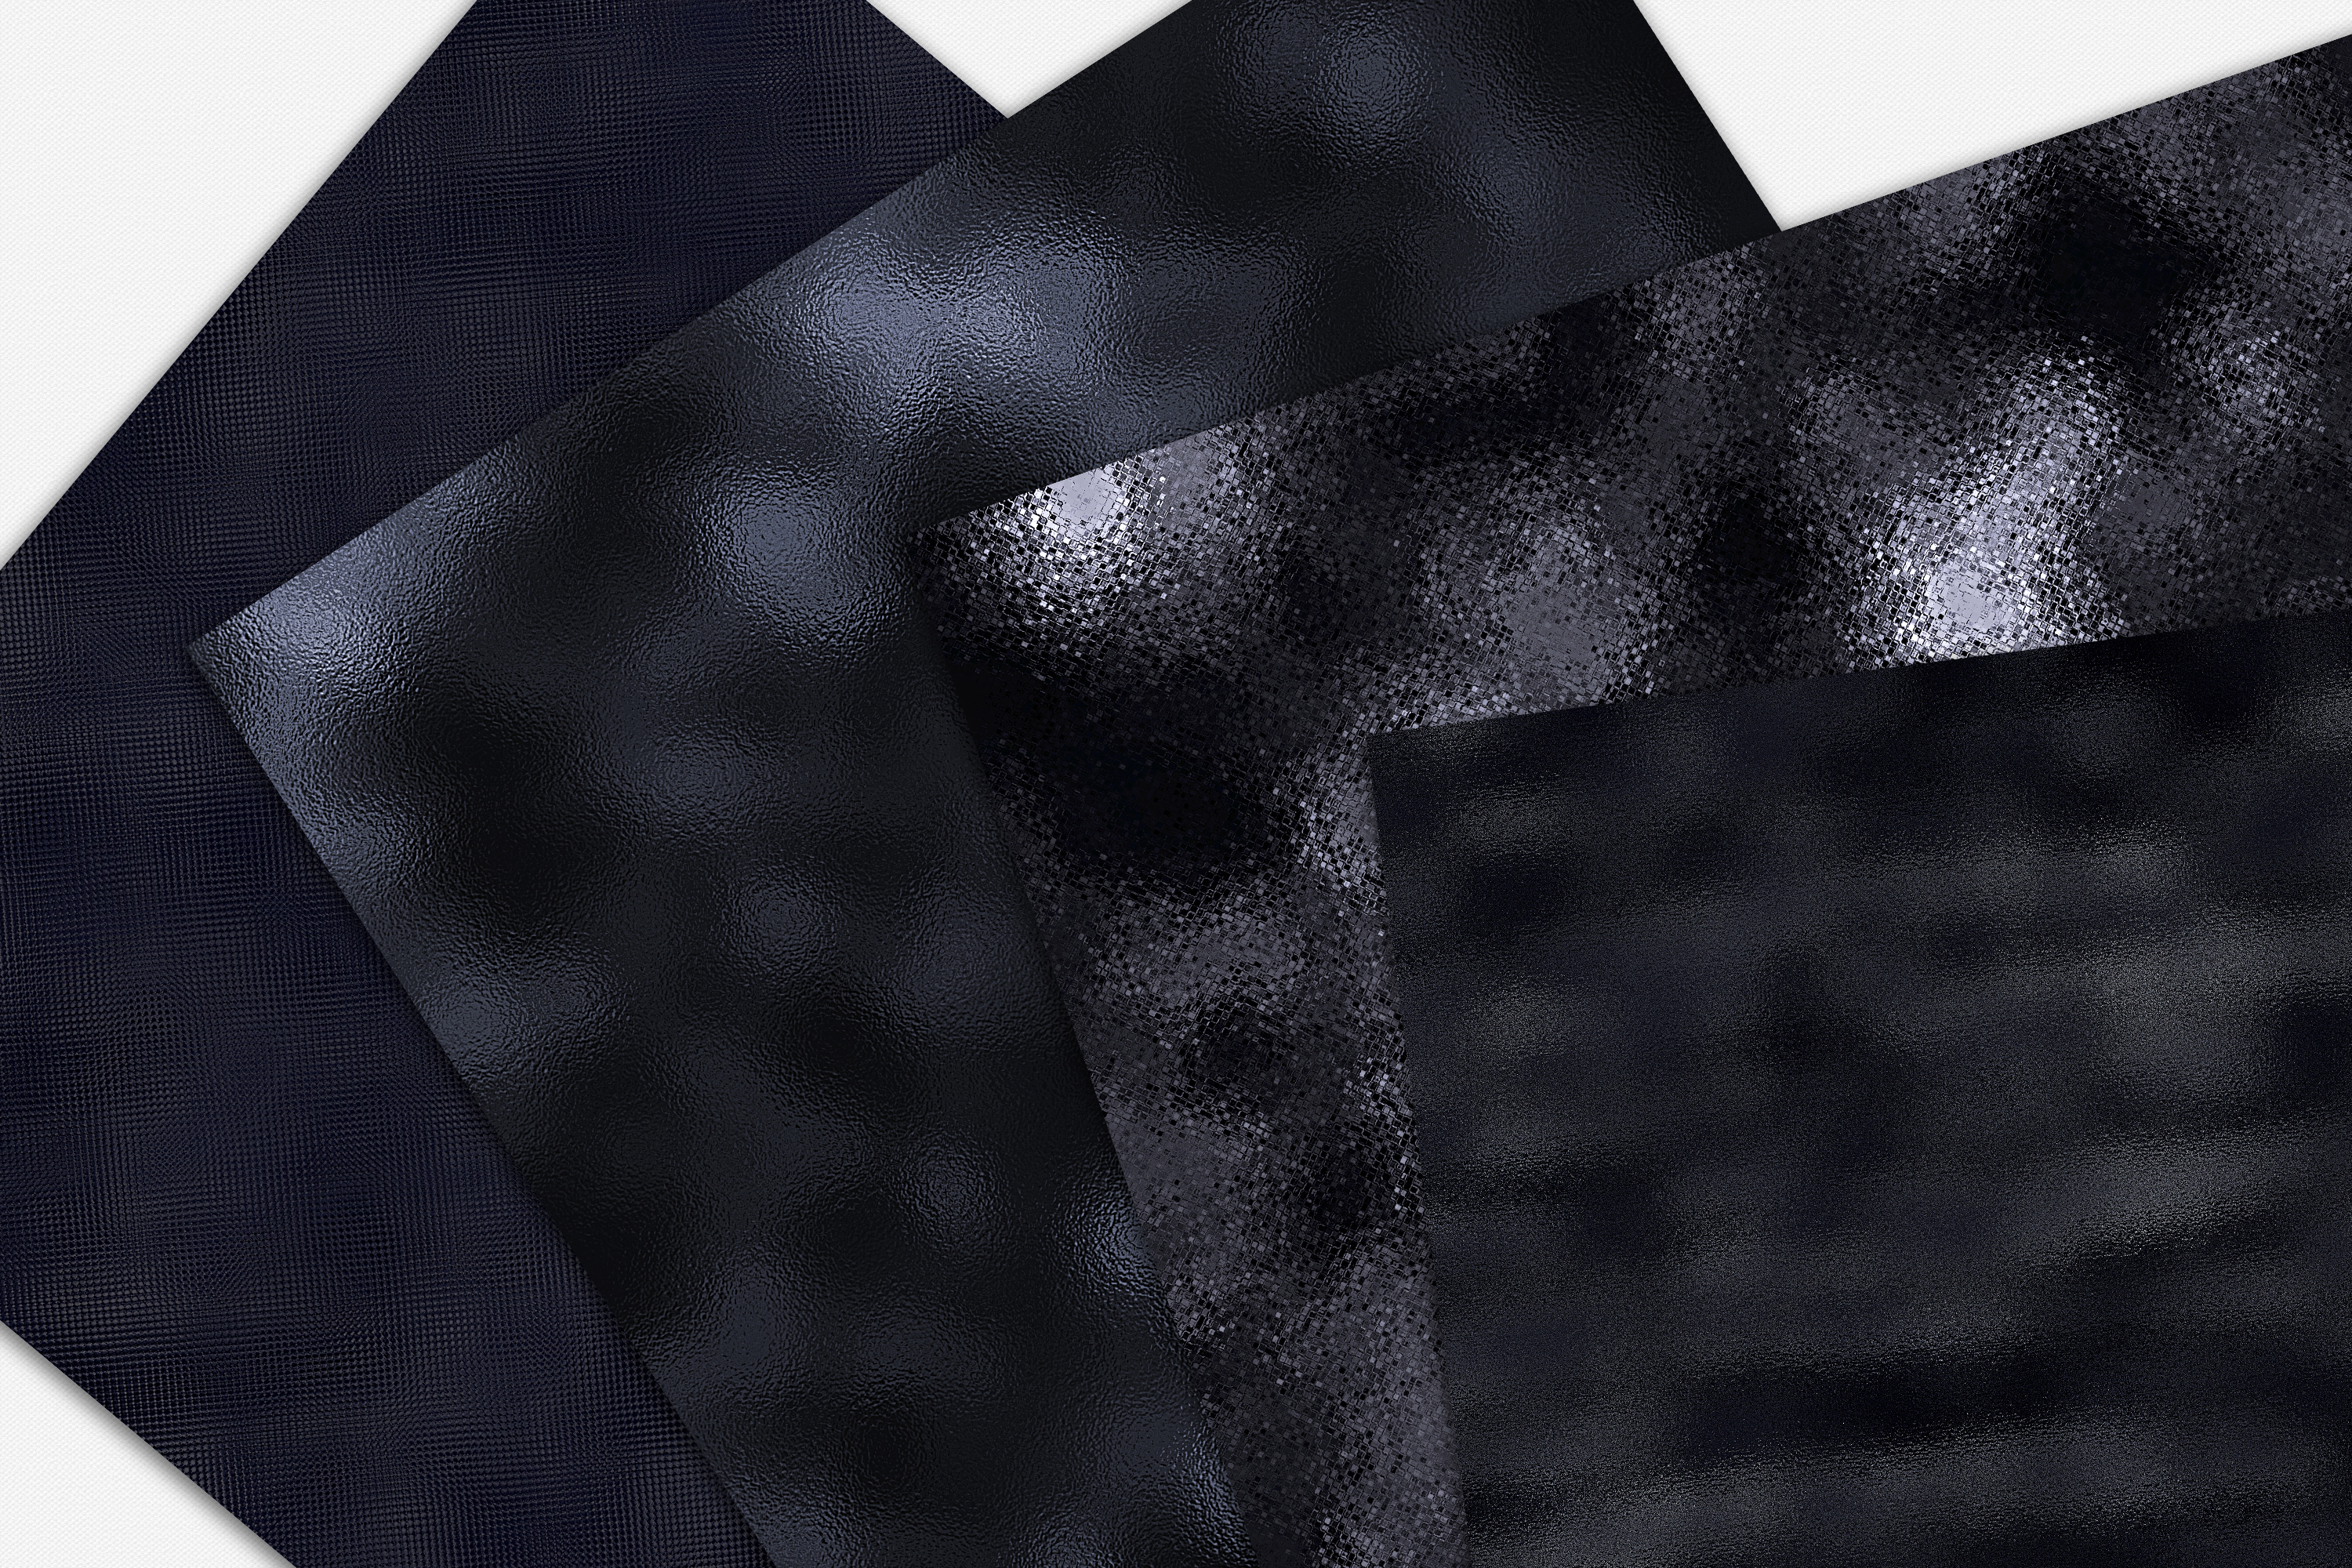 15 Black Metallic, Foil and Glitter Digital Papers example image 5